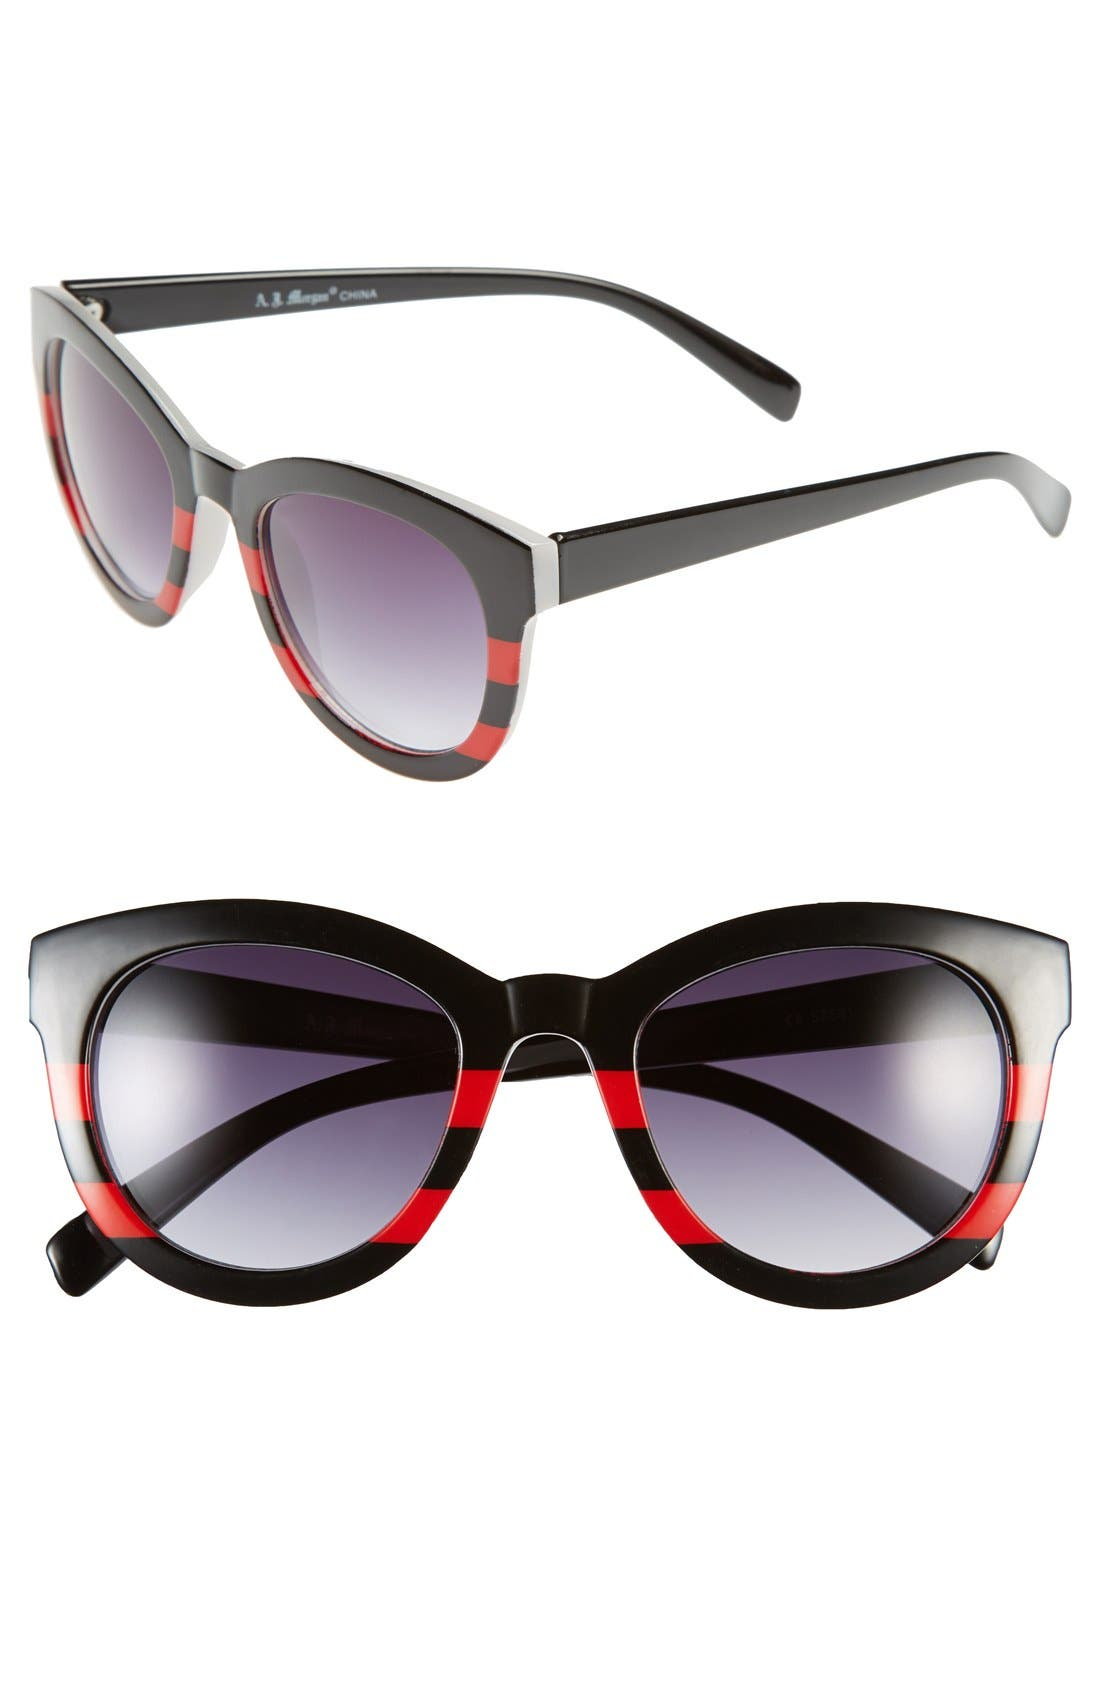 'Collette' 50mm Sunglasses,                             Main thumbnail 1, color,                             Black/ Red